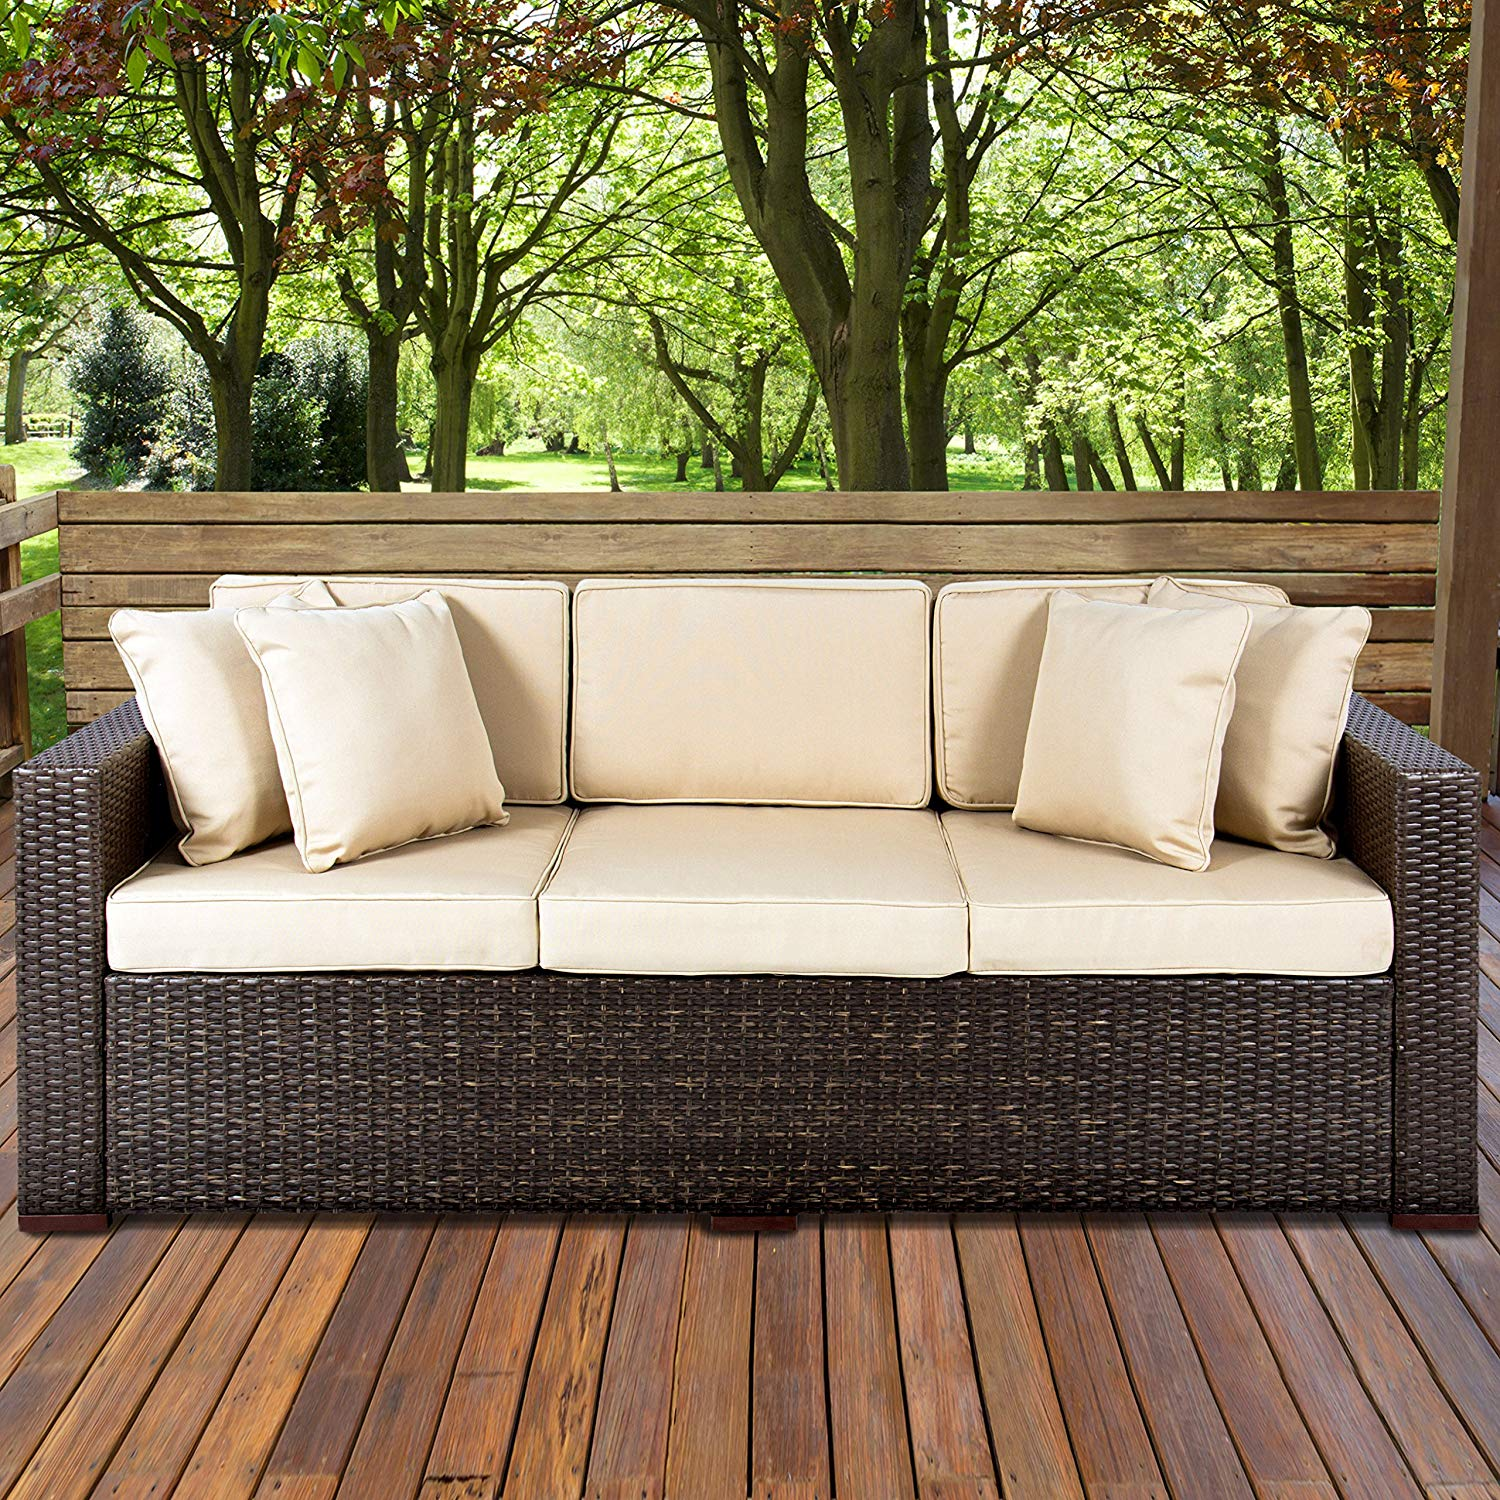 wicker furniture amazon.com : best choice products 3-seat outdoor wicker sofa couch patio HEPGCJA